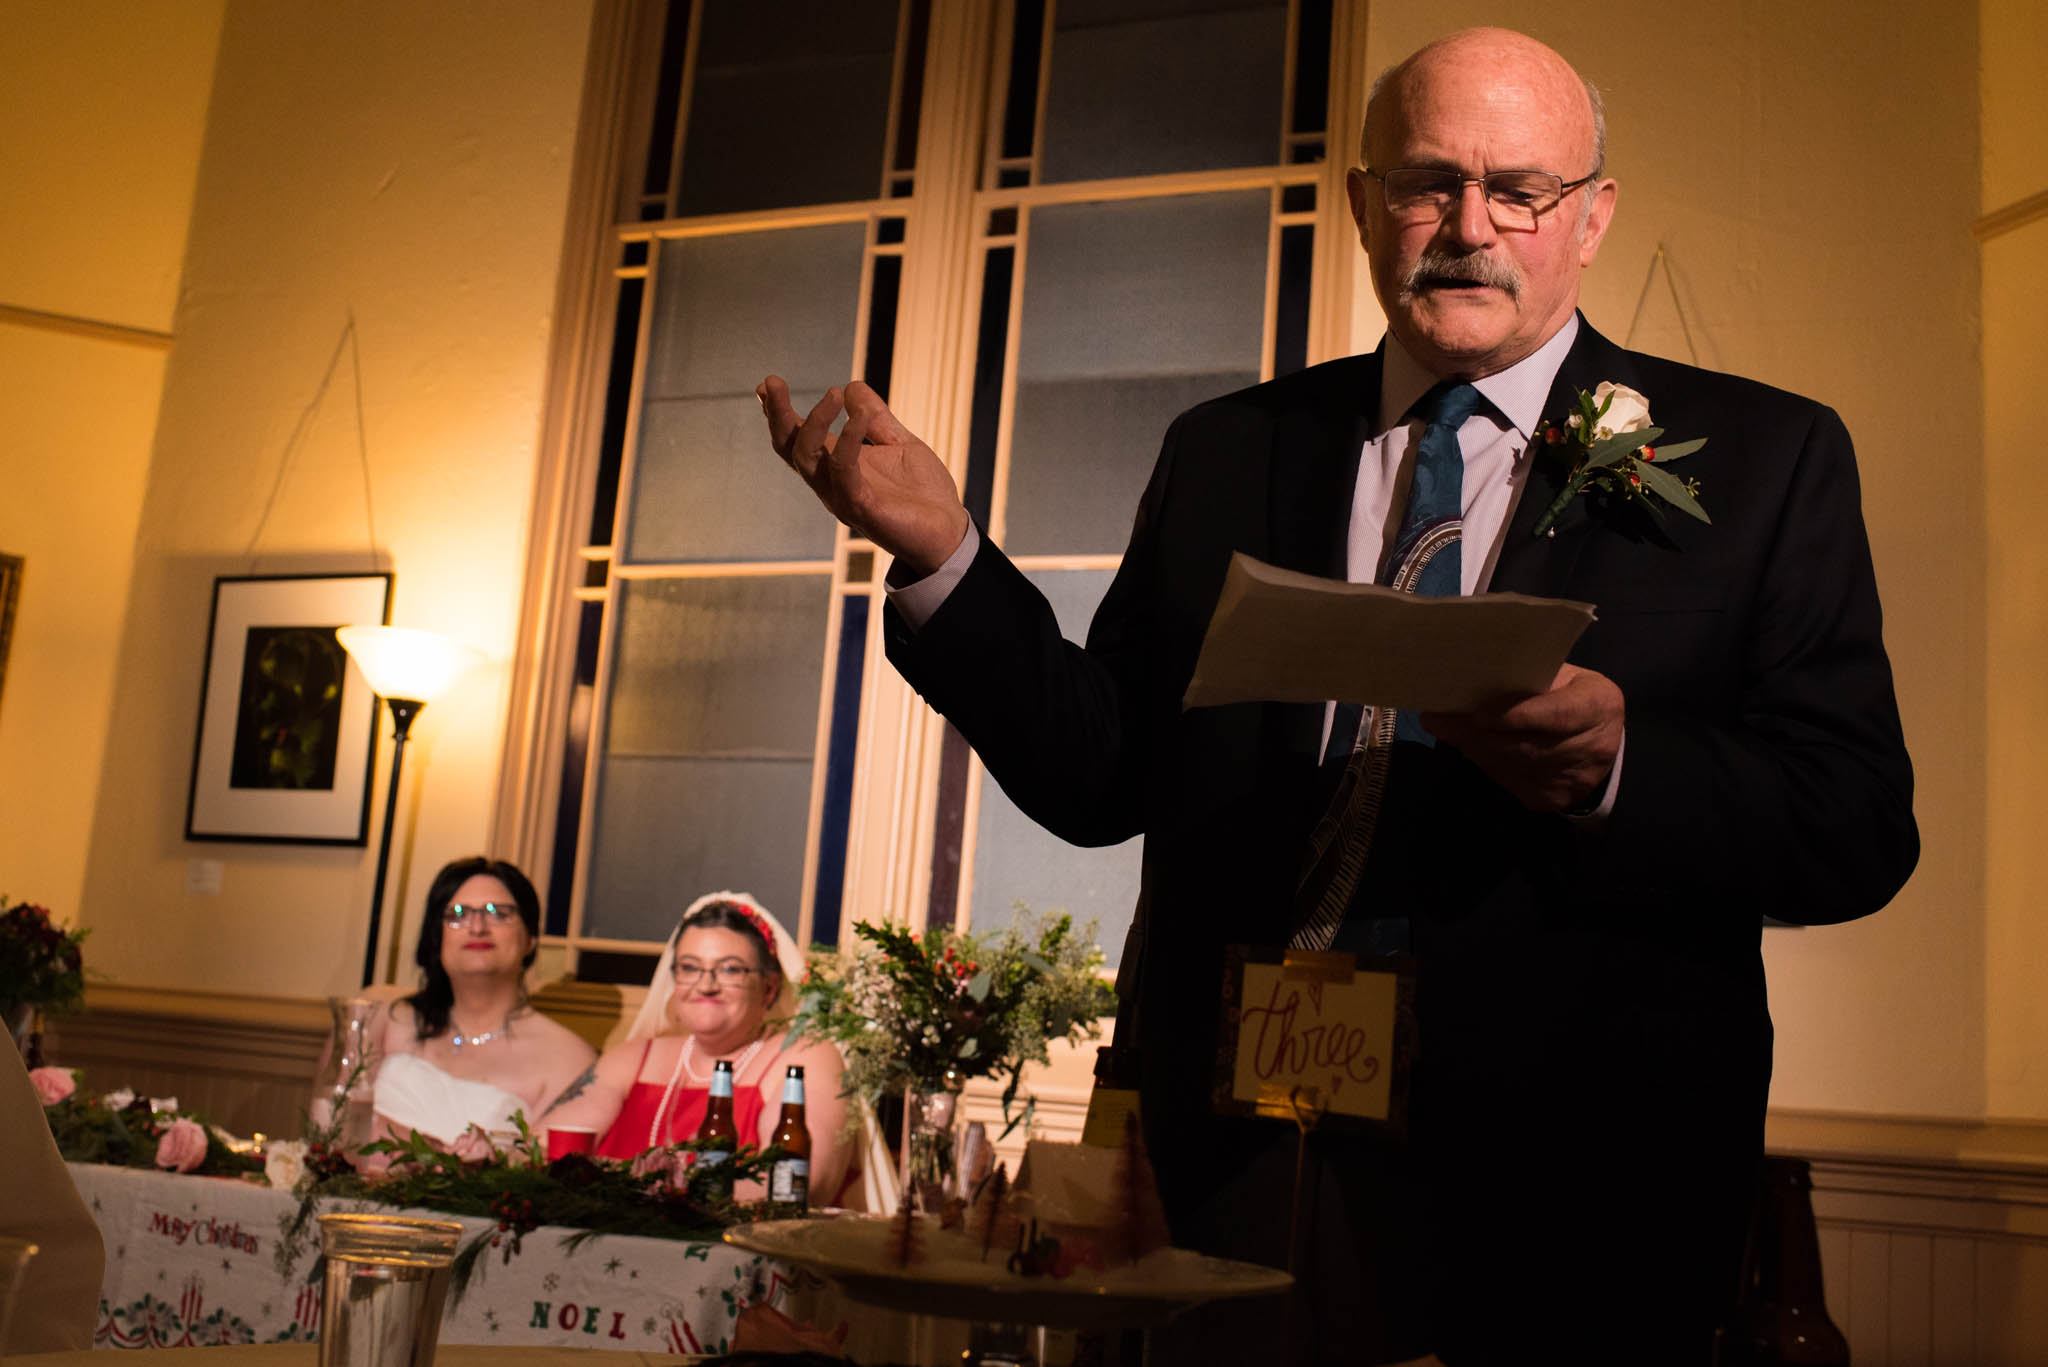 Father of the bride giving a toast during wedding reception